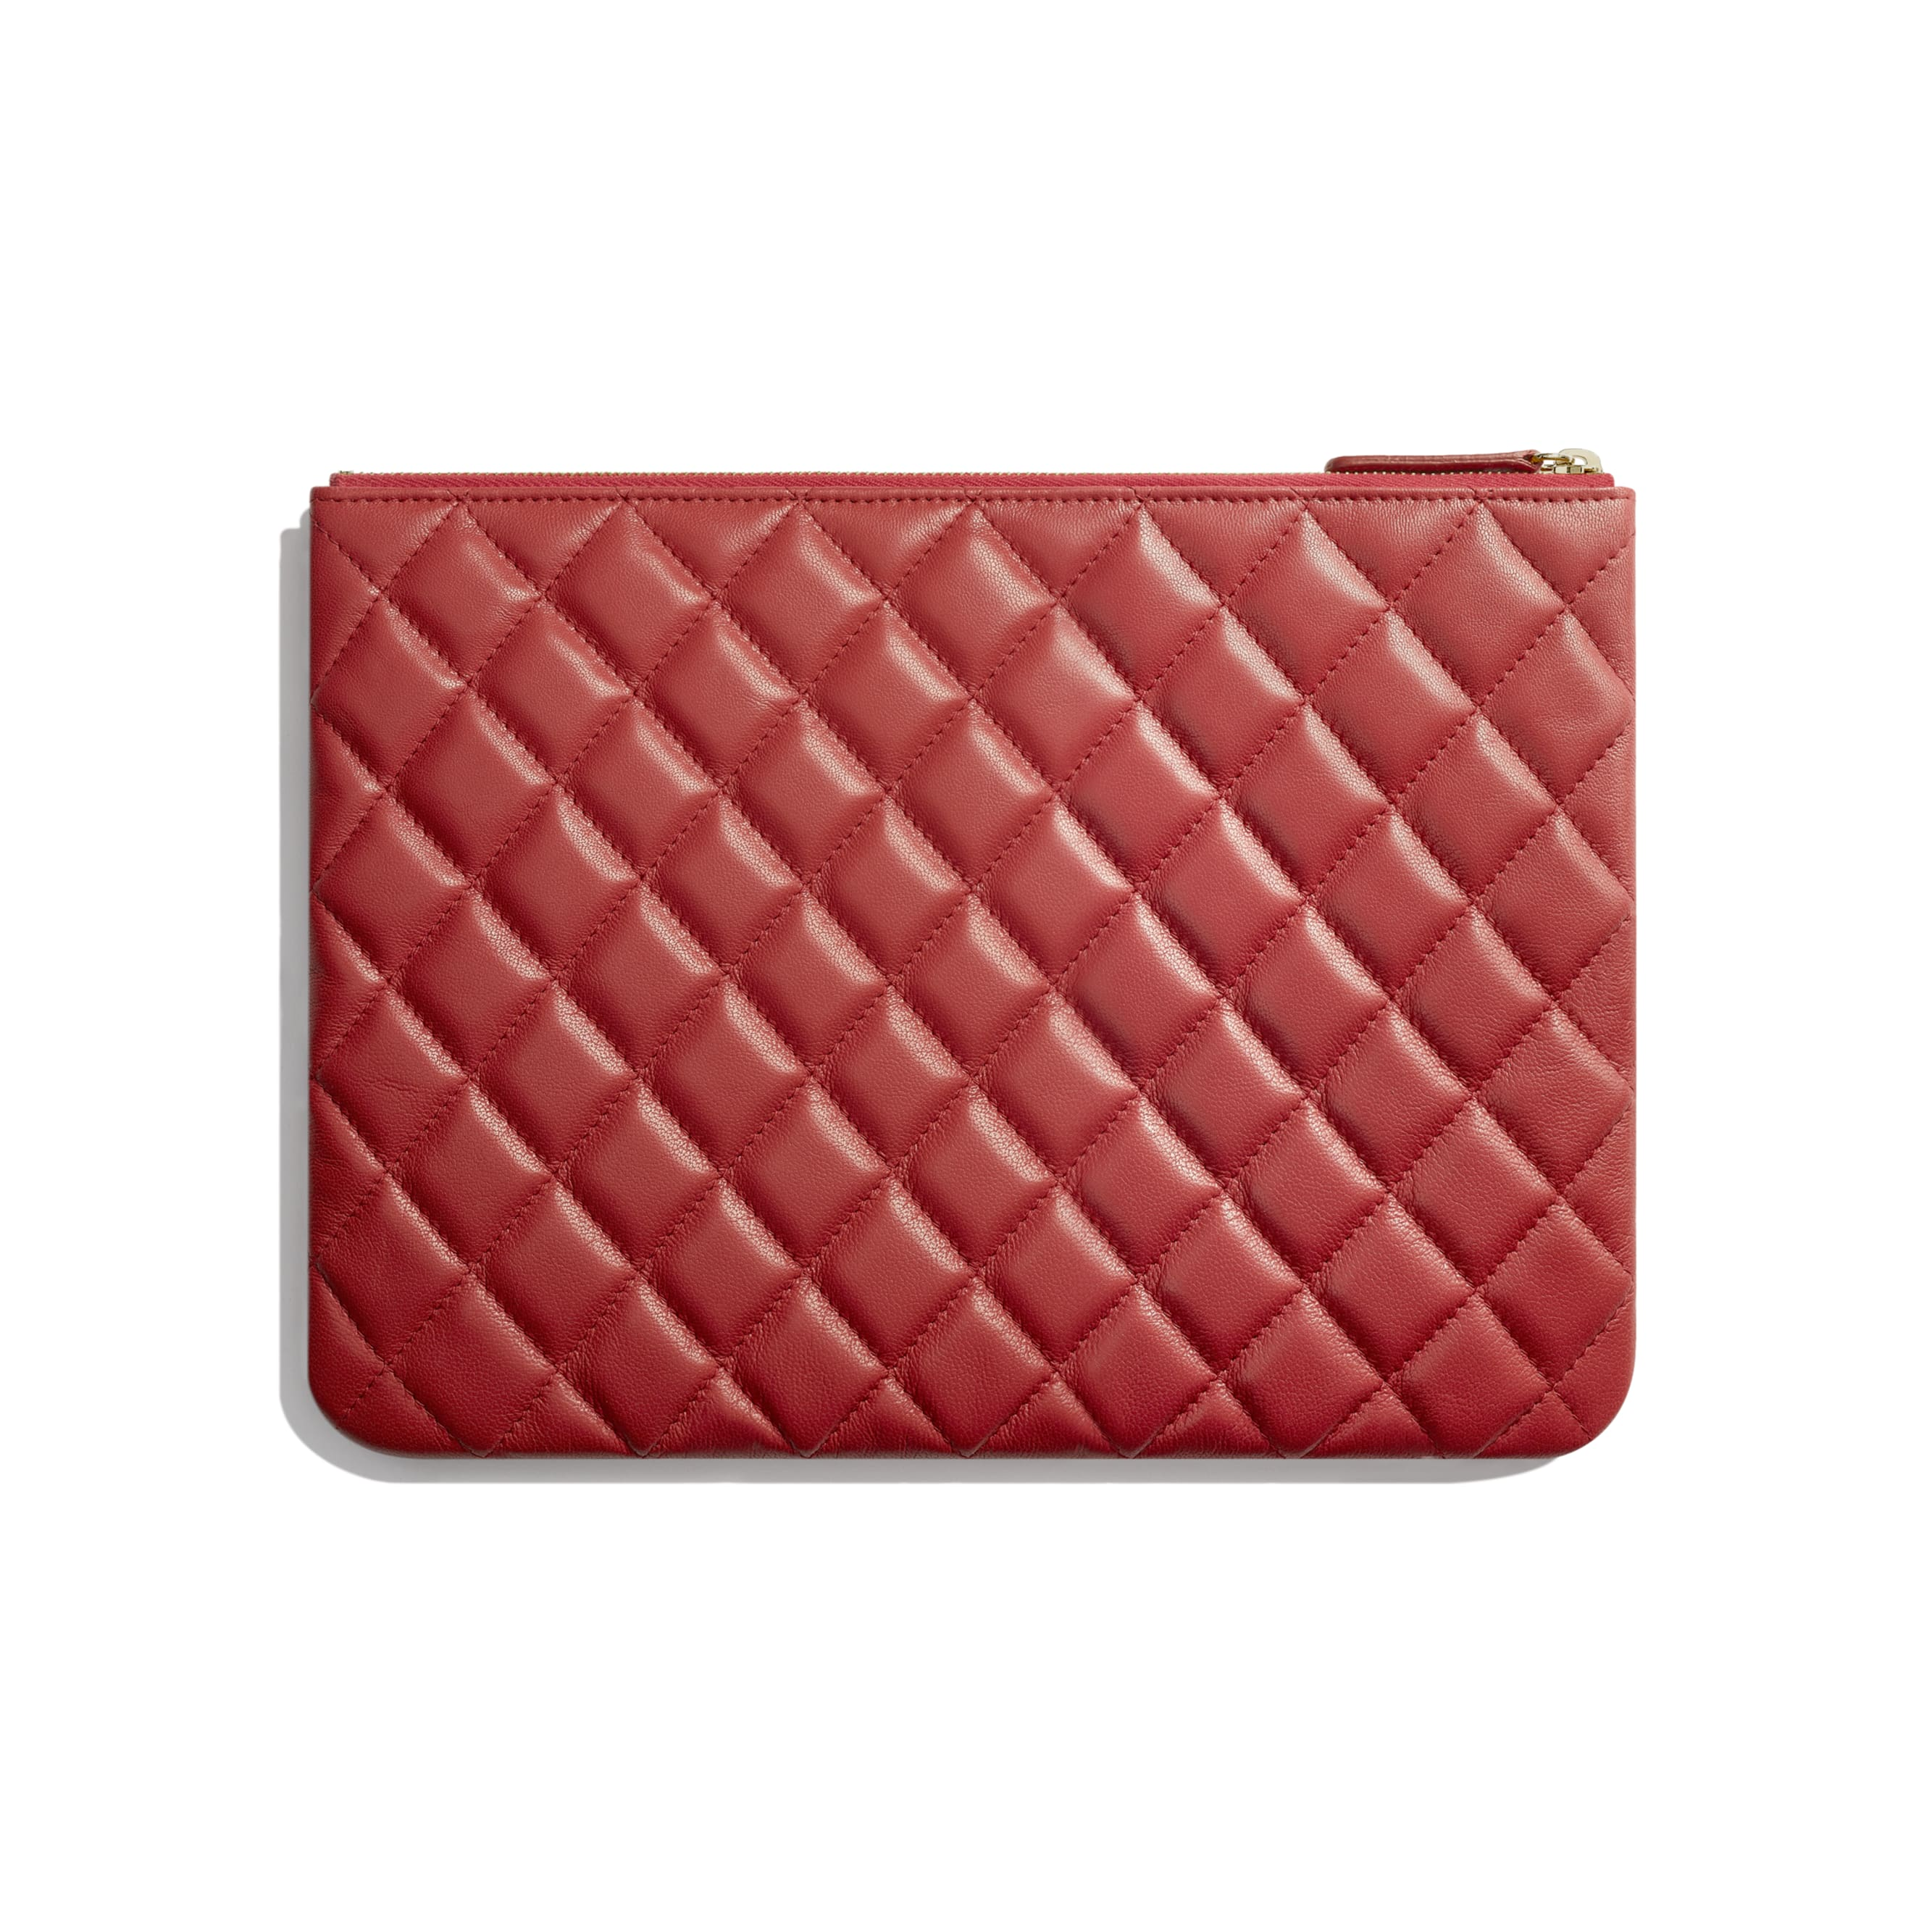 Pouch - Red - Lambskin & Gold-Tone Metal - Alternative view - see standard sized version